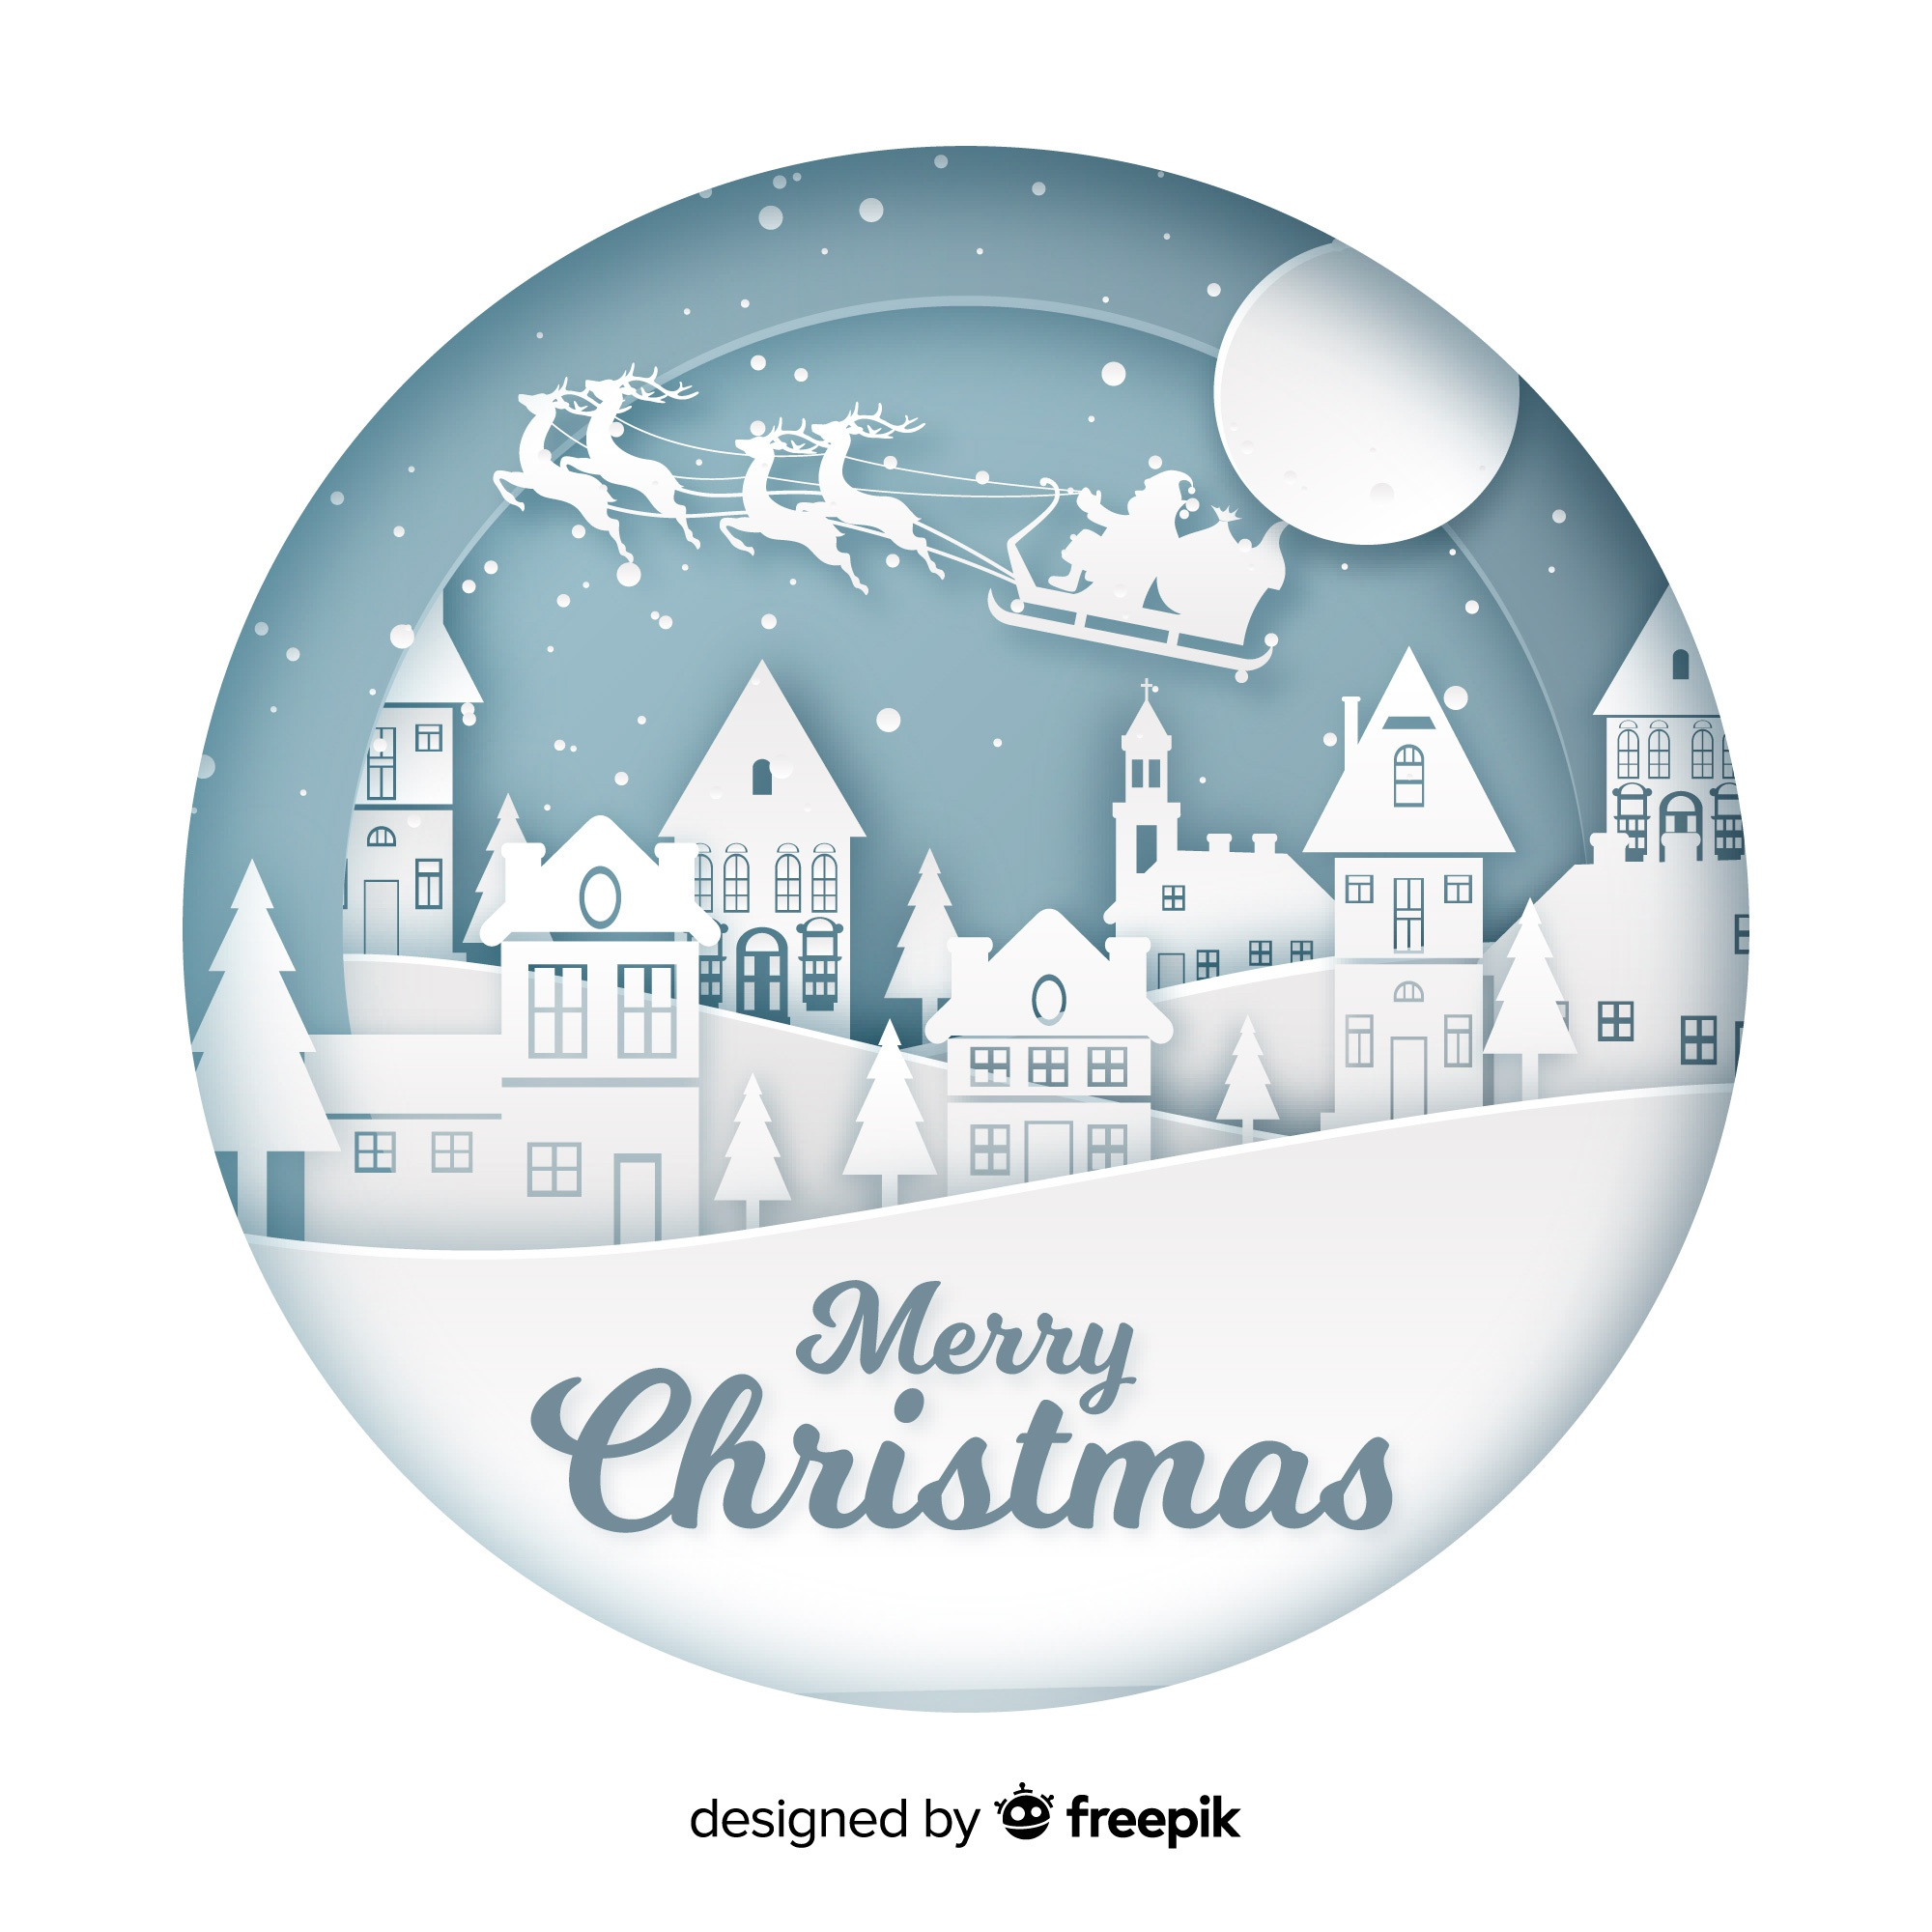 Merry christmas background in paper art style